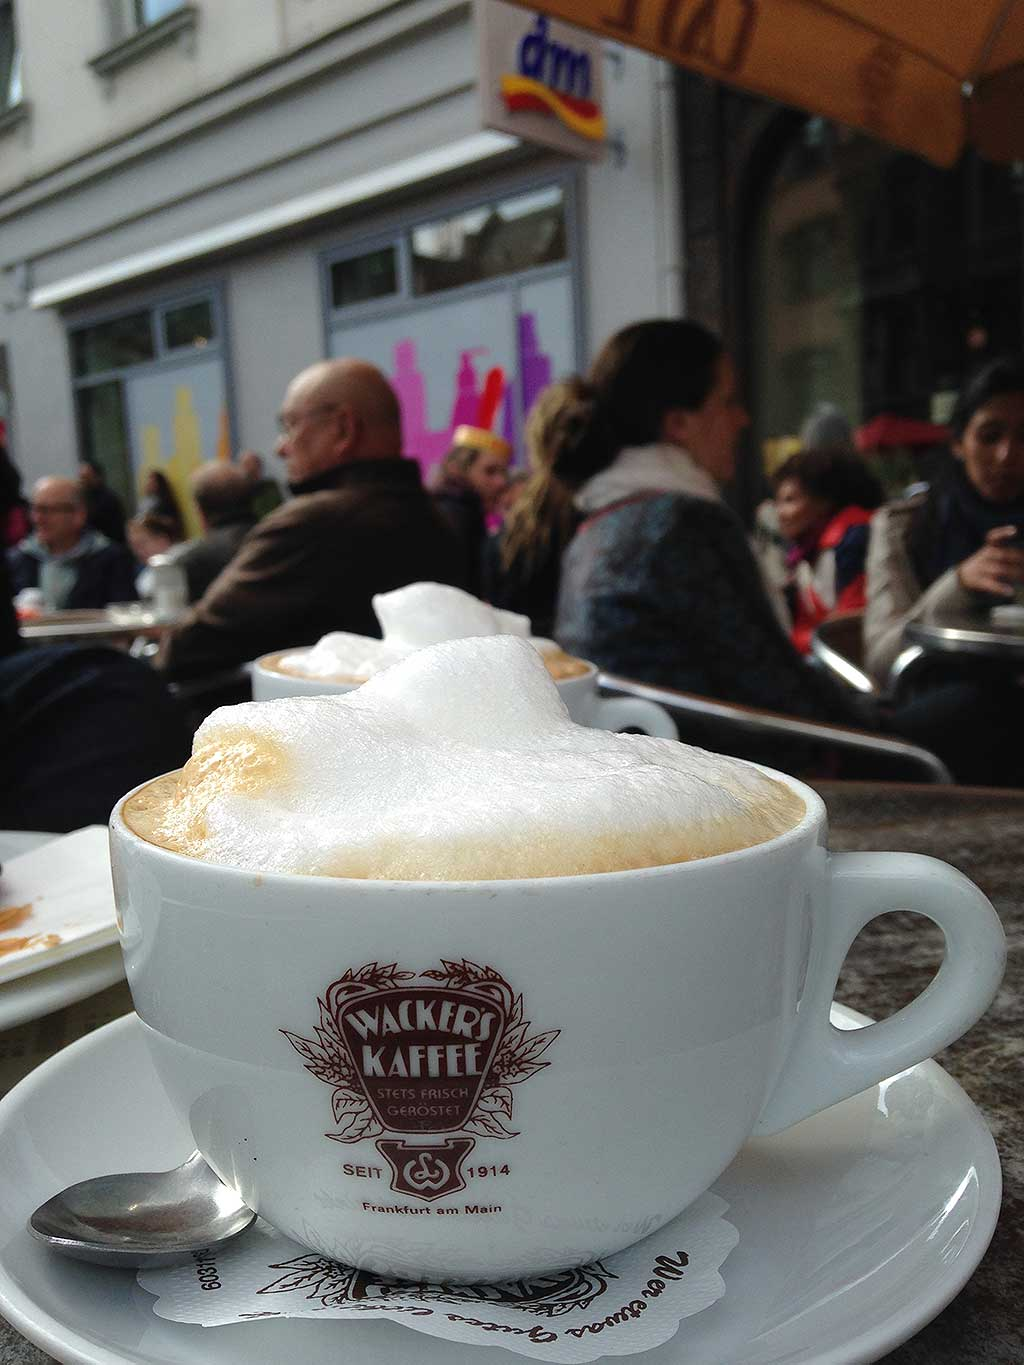 Wacker'S Kaffee in Frankfurt am Main